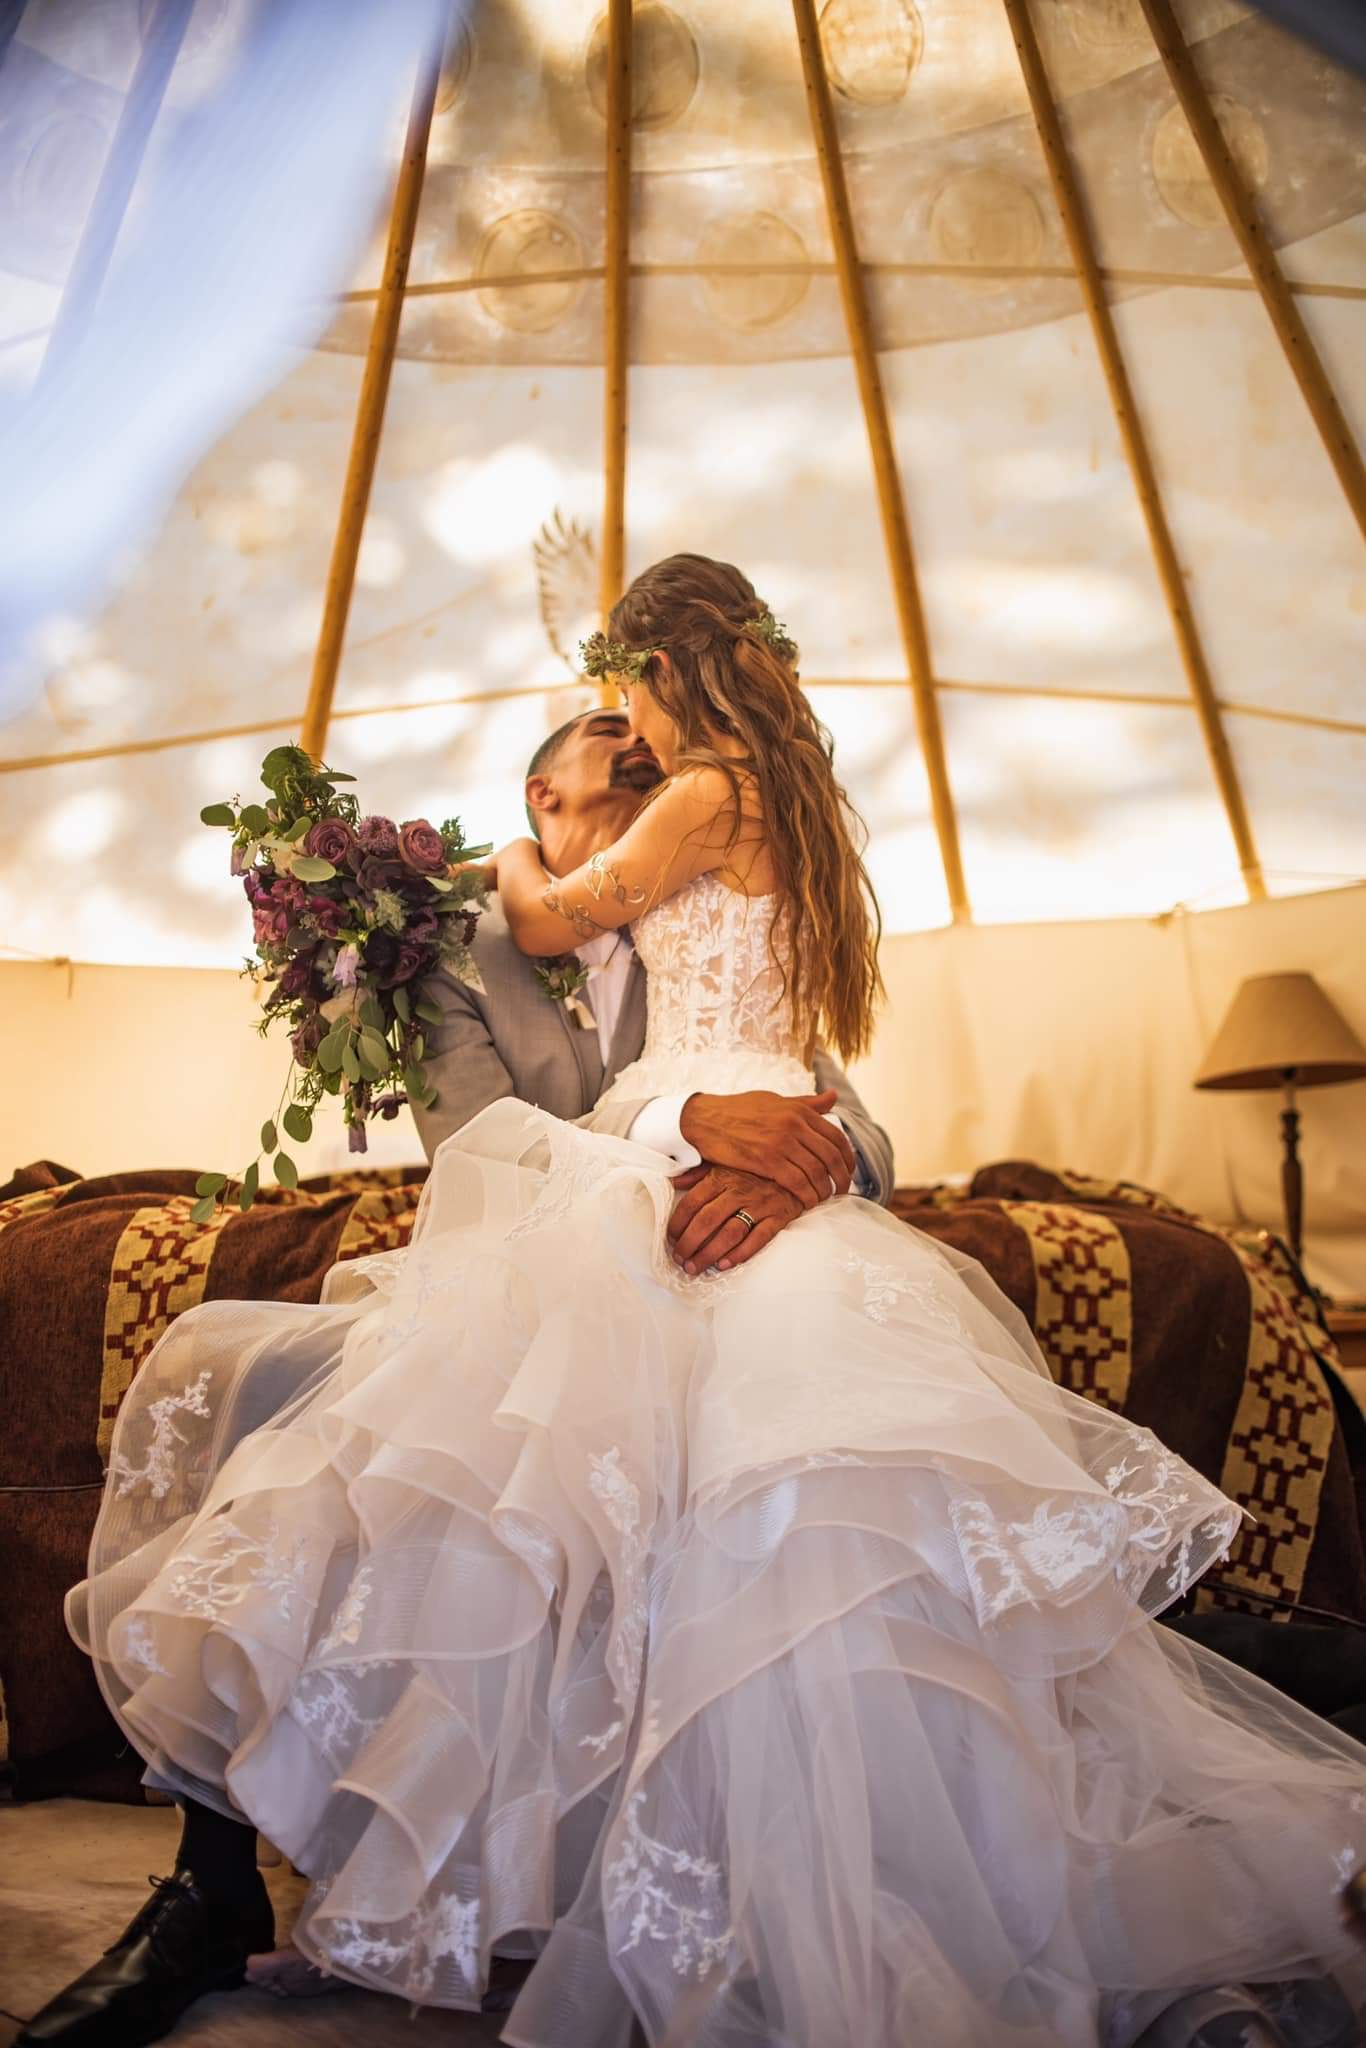 Anomalie Online Custom Wedding Dresses can create your boho dream dress with tiers, ruffles, tulle, and lace.